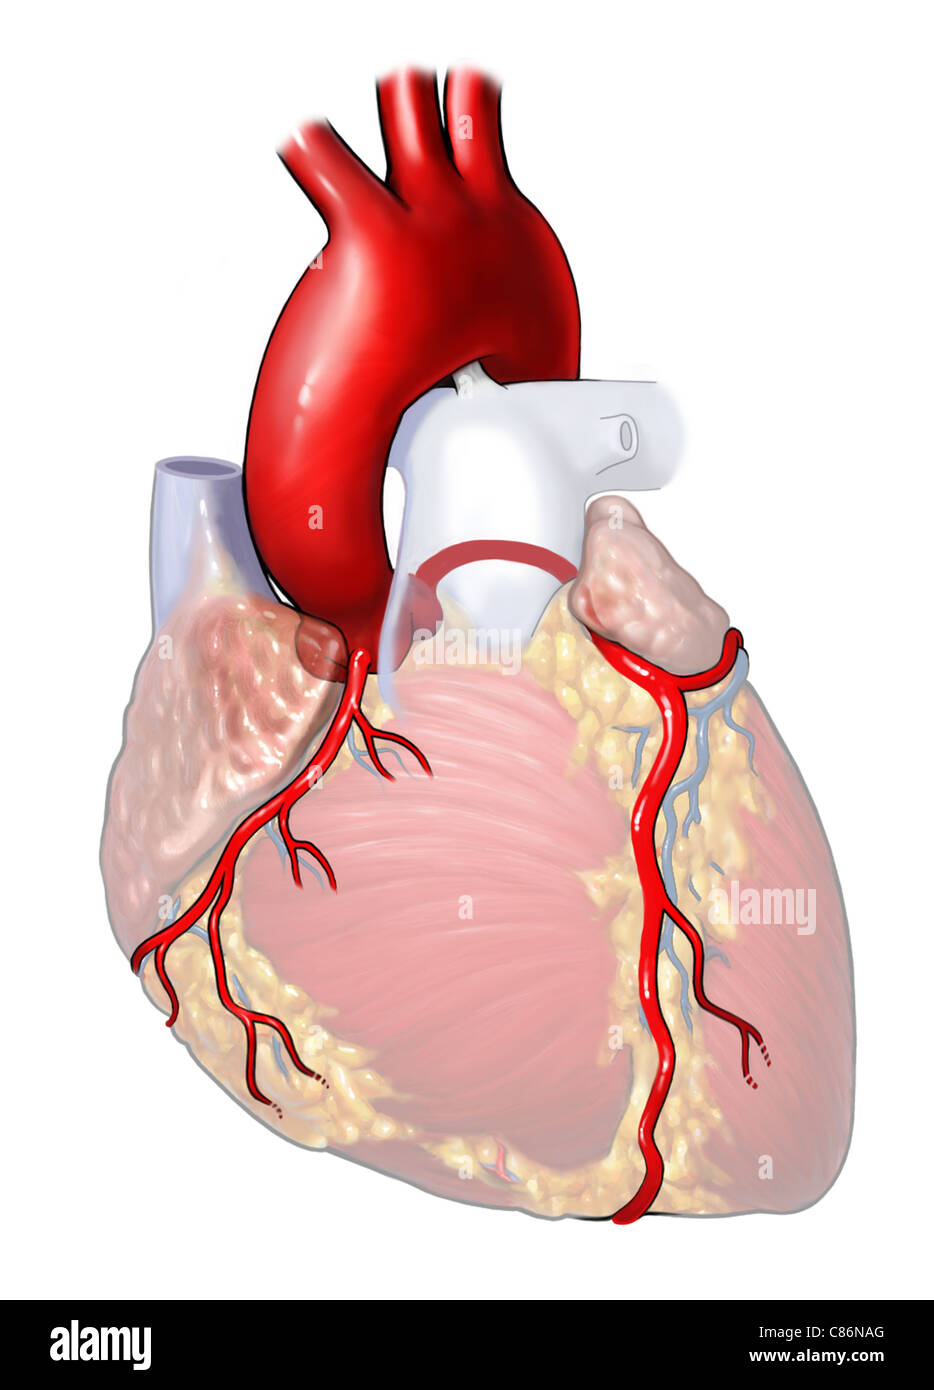 Heart with Stenosis of Aortic Root Stock Photo: 39486456 - Alamy